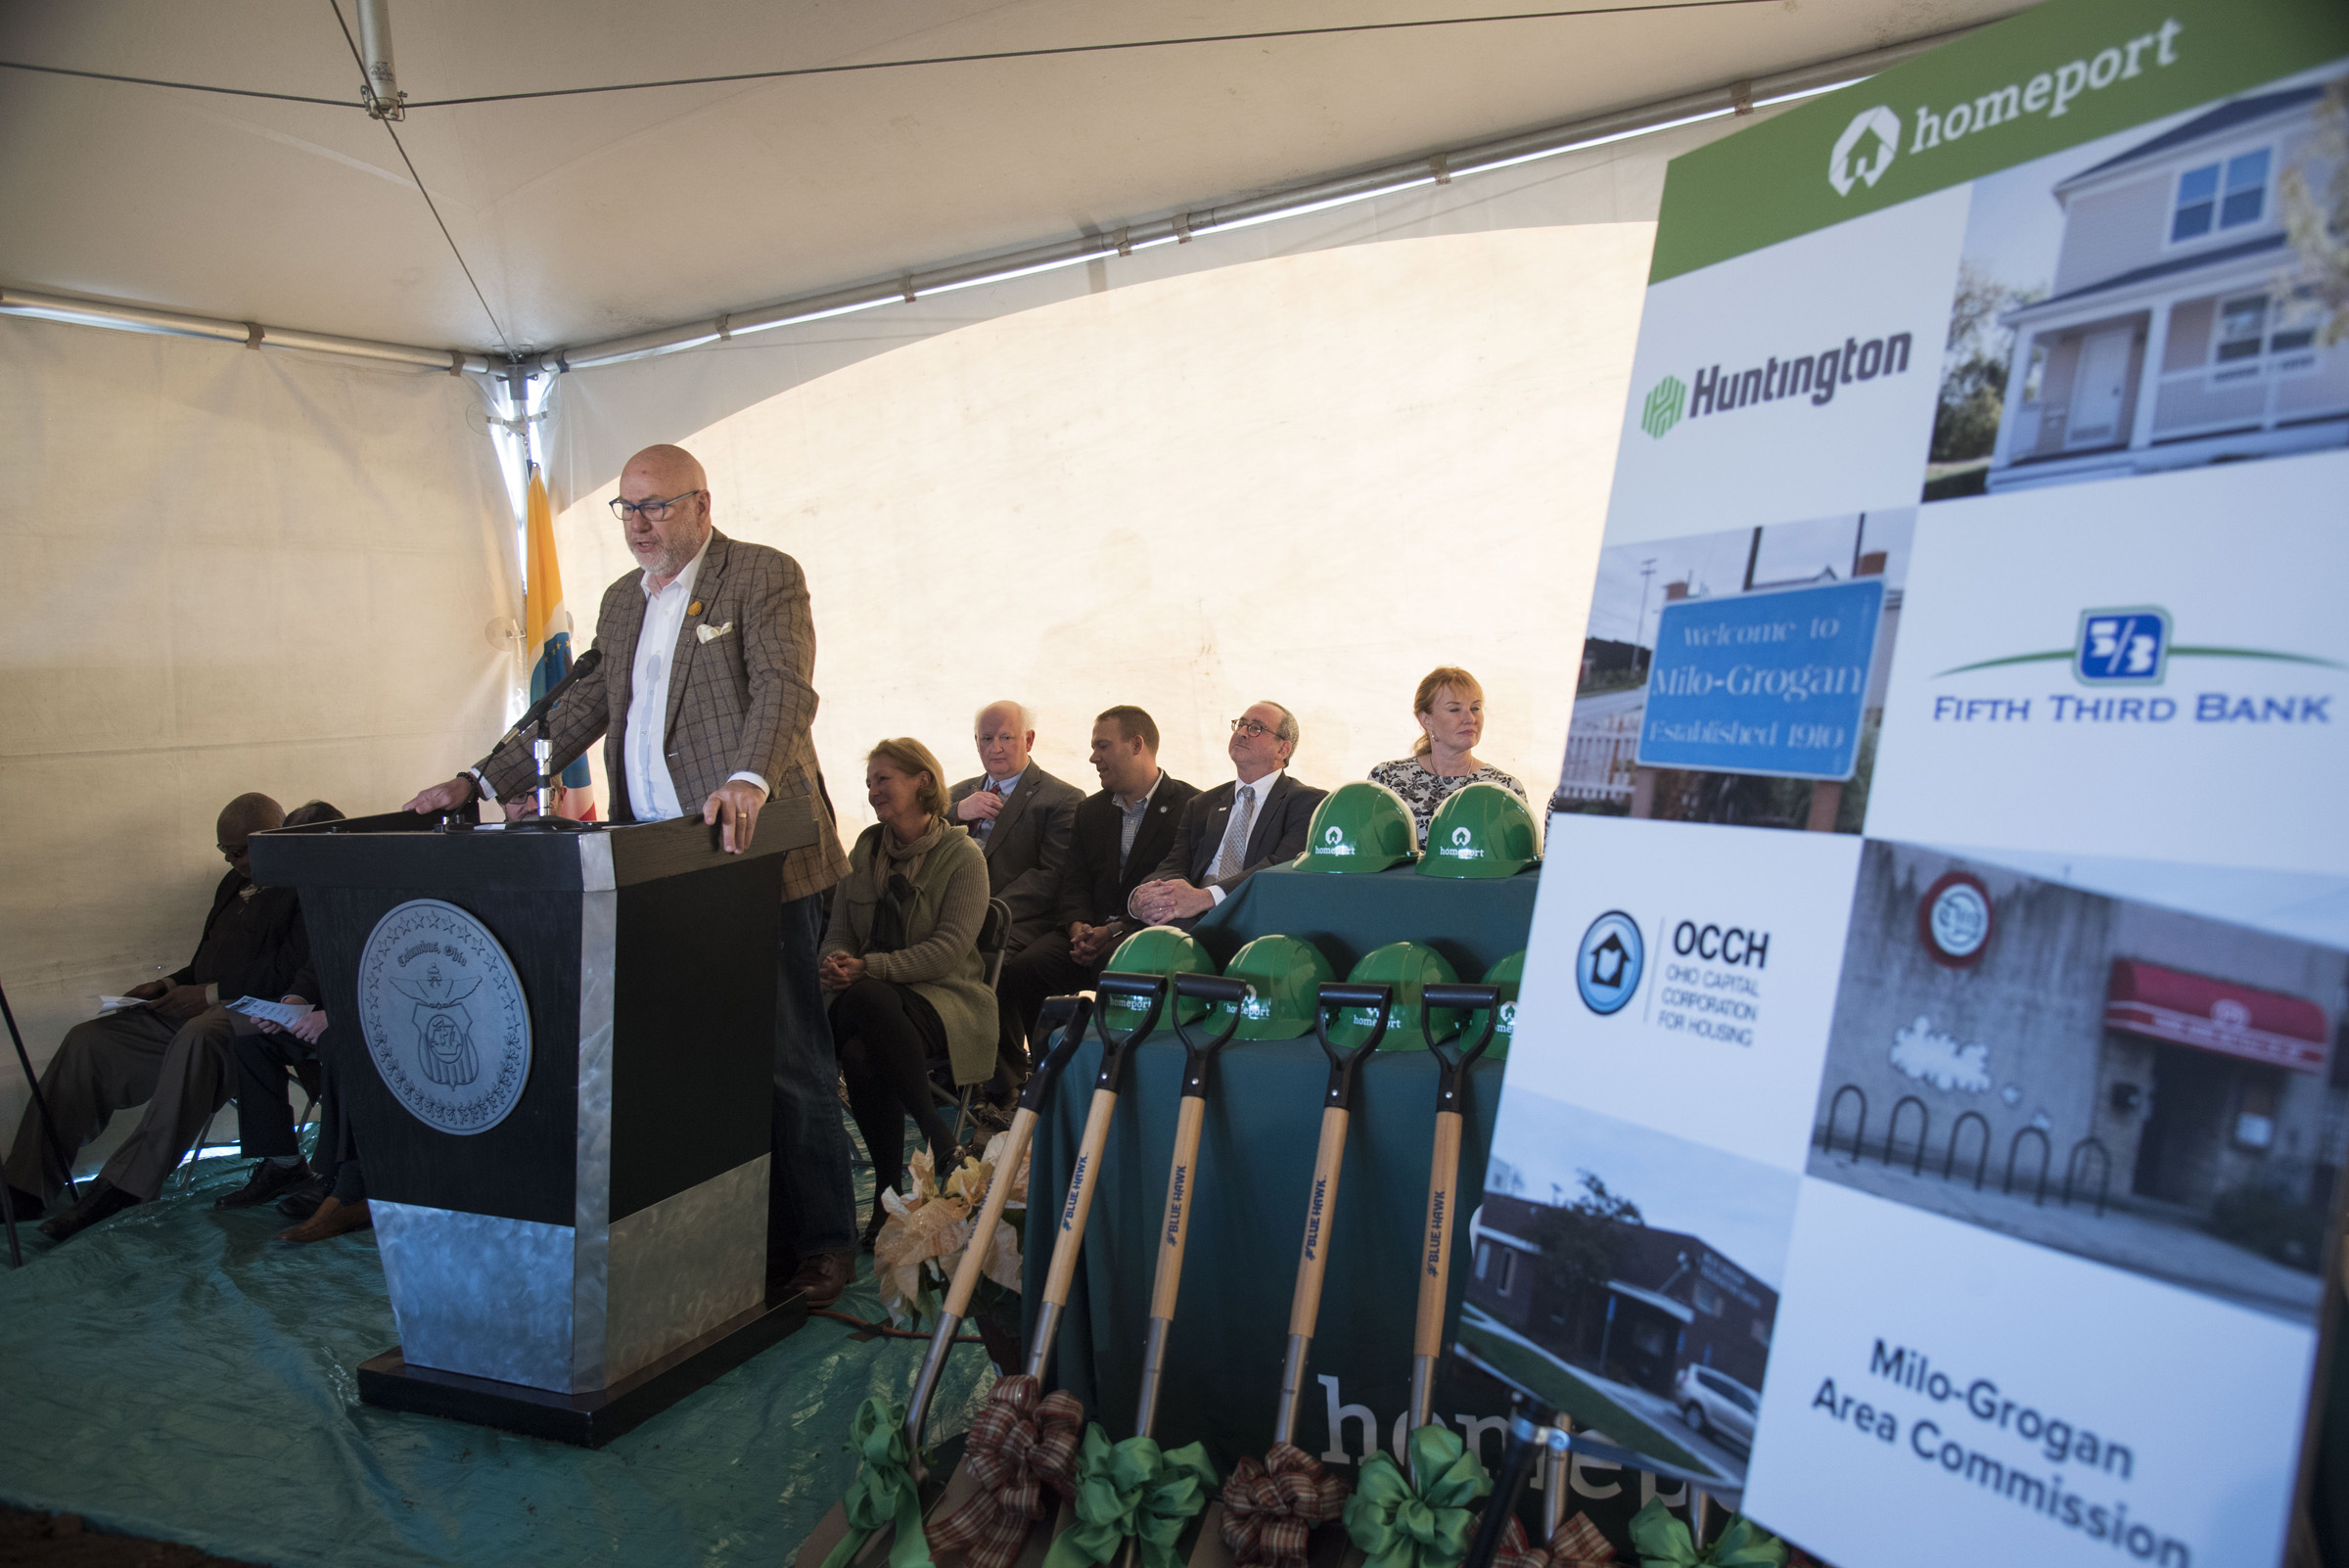 Steven D. Gladman, President, Affordable Housing Trust for Columbus and Franklin County, speaks at Milo-Grogan groundbreaking event in October 2017.